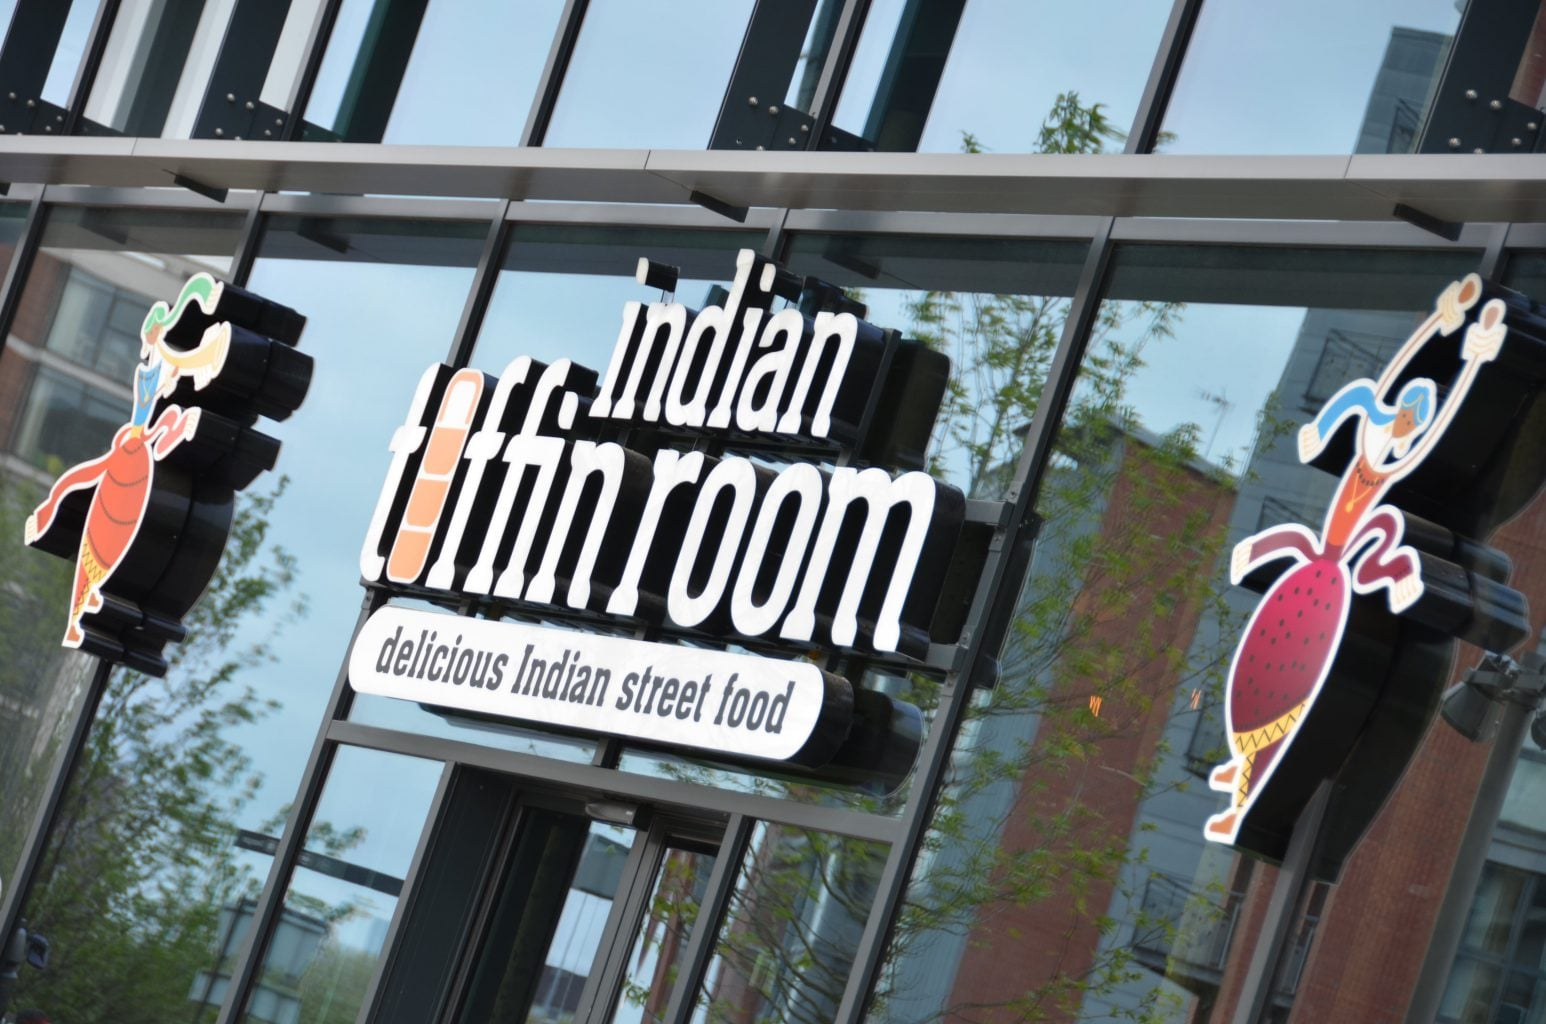 Indian Tiffin Room illuminated built up letters